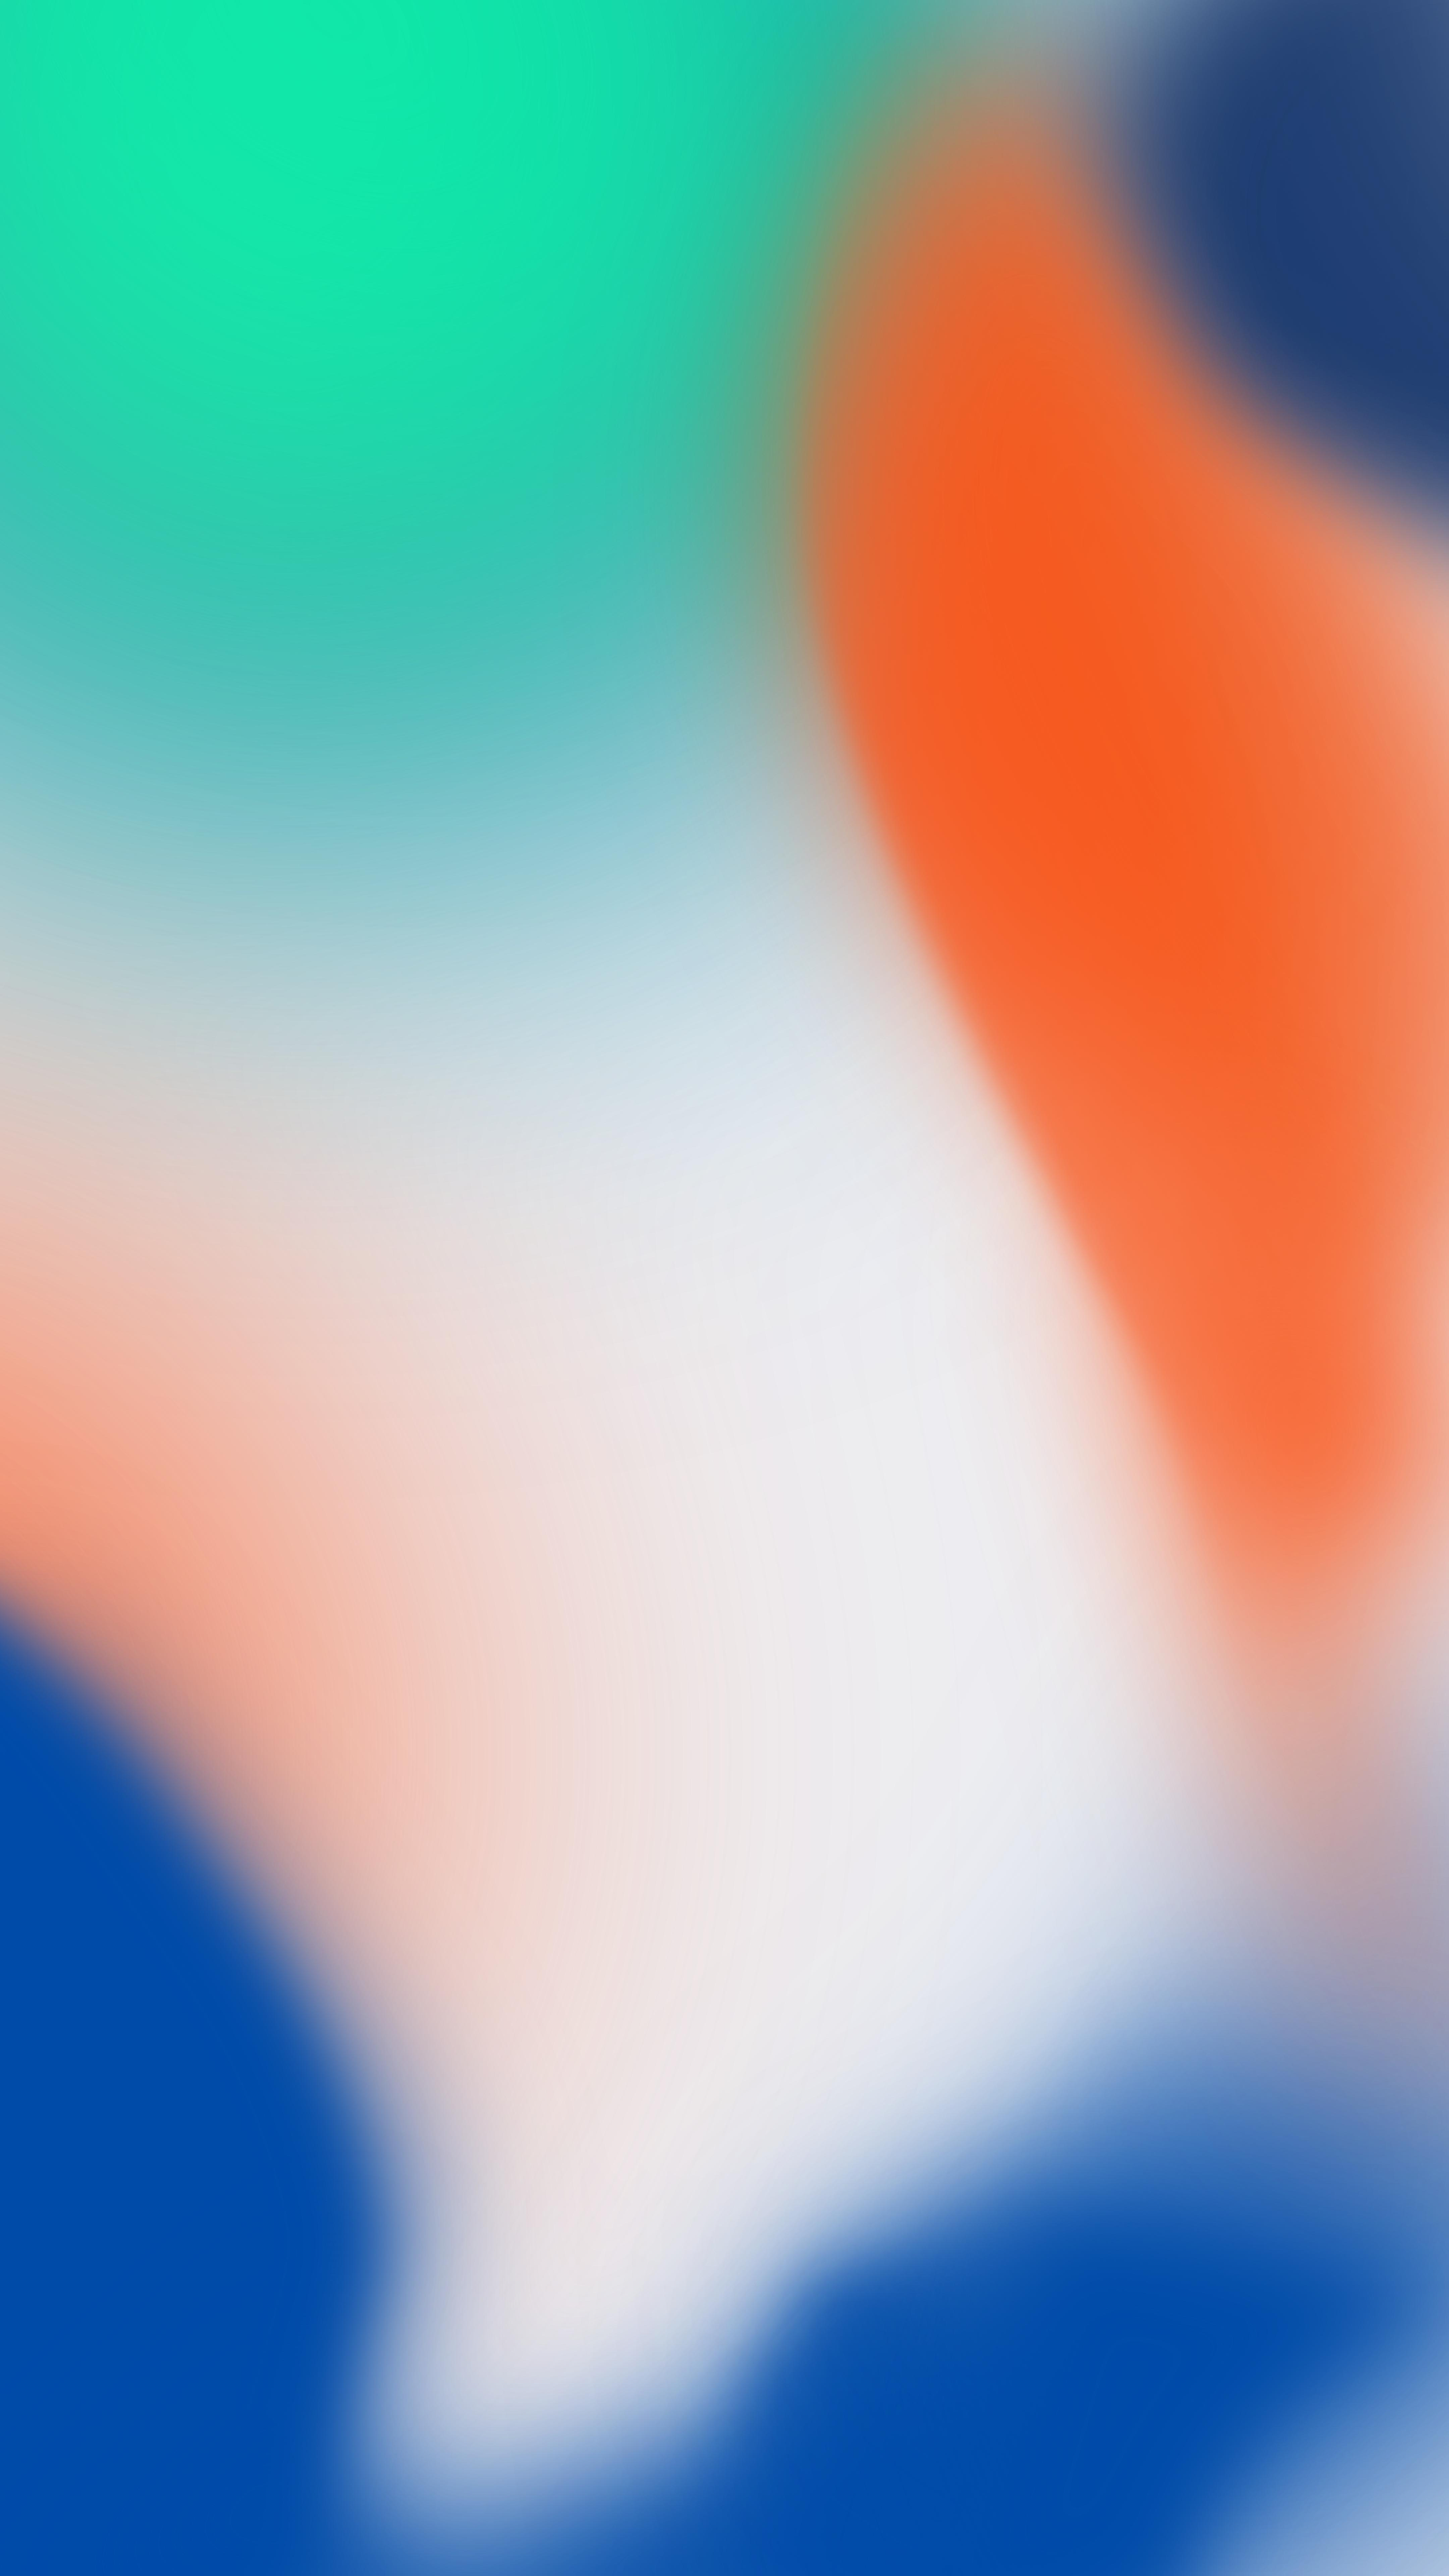 IPhone X Wallpaper Green Orange Blue